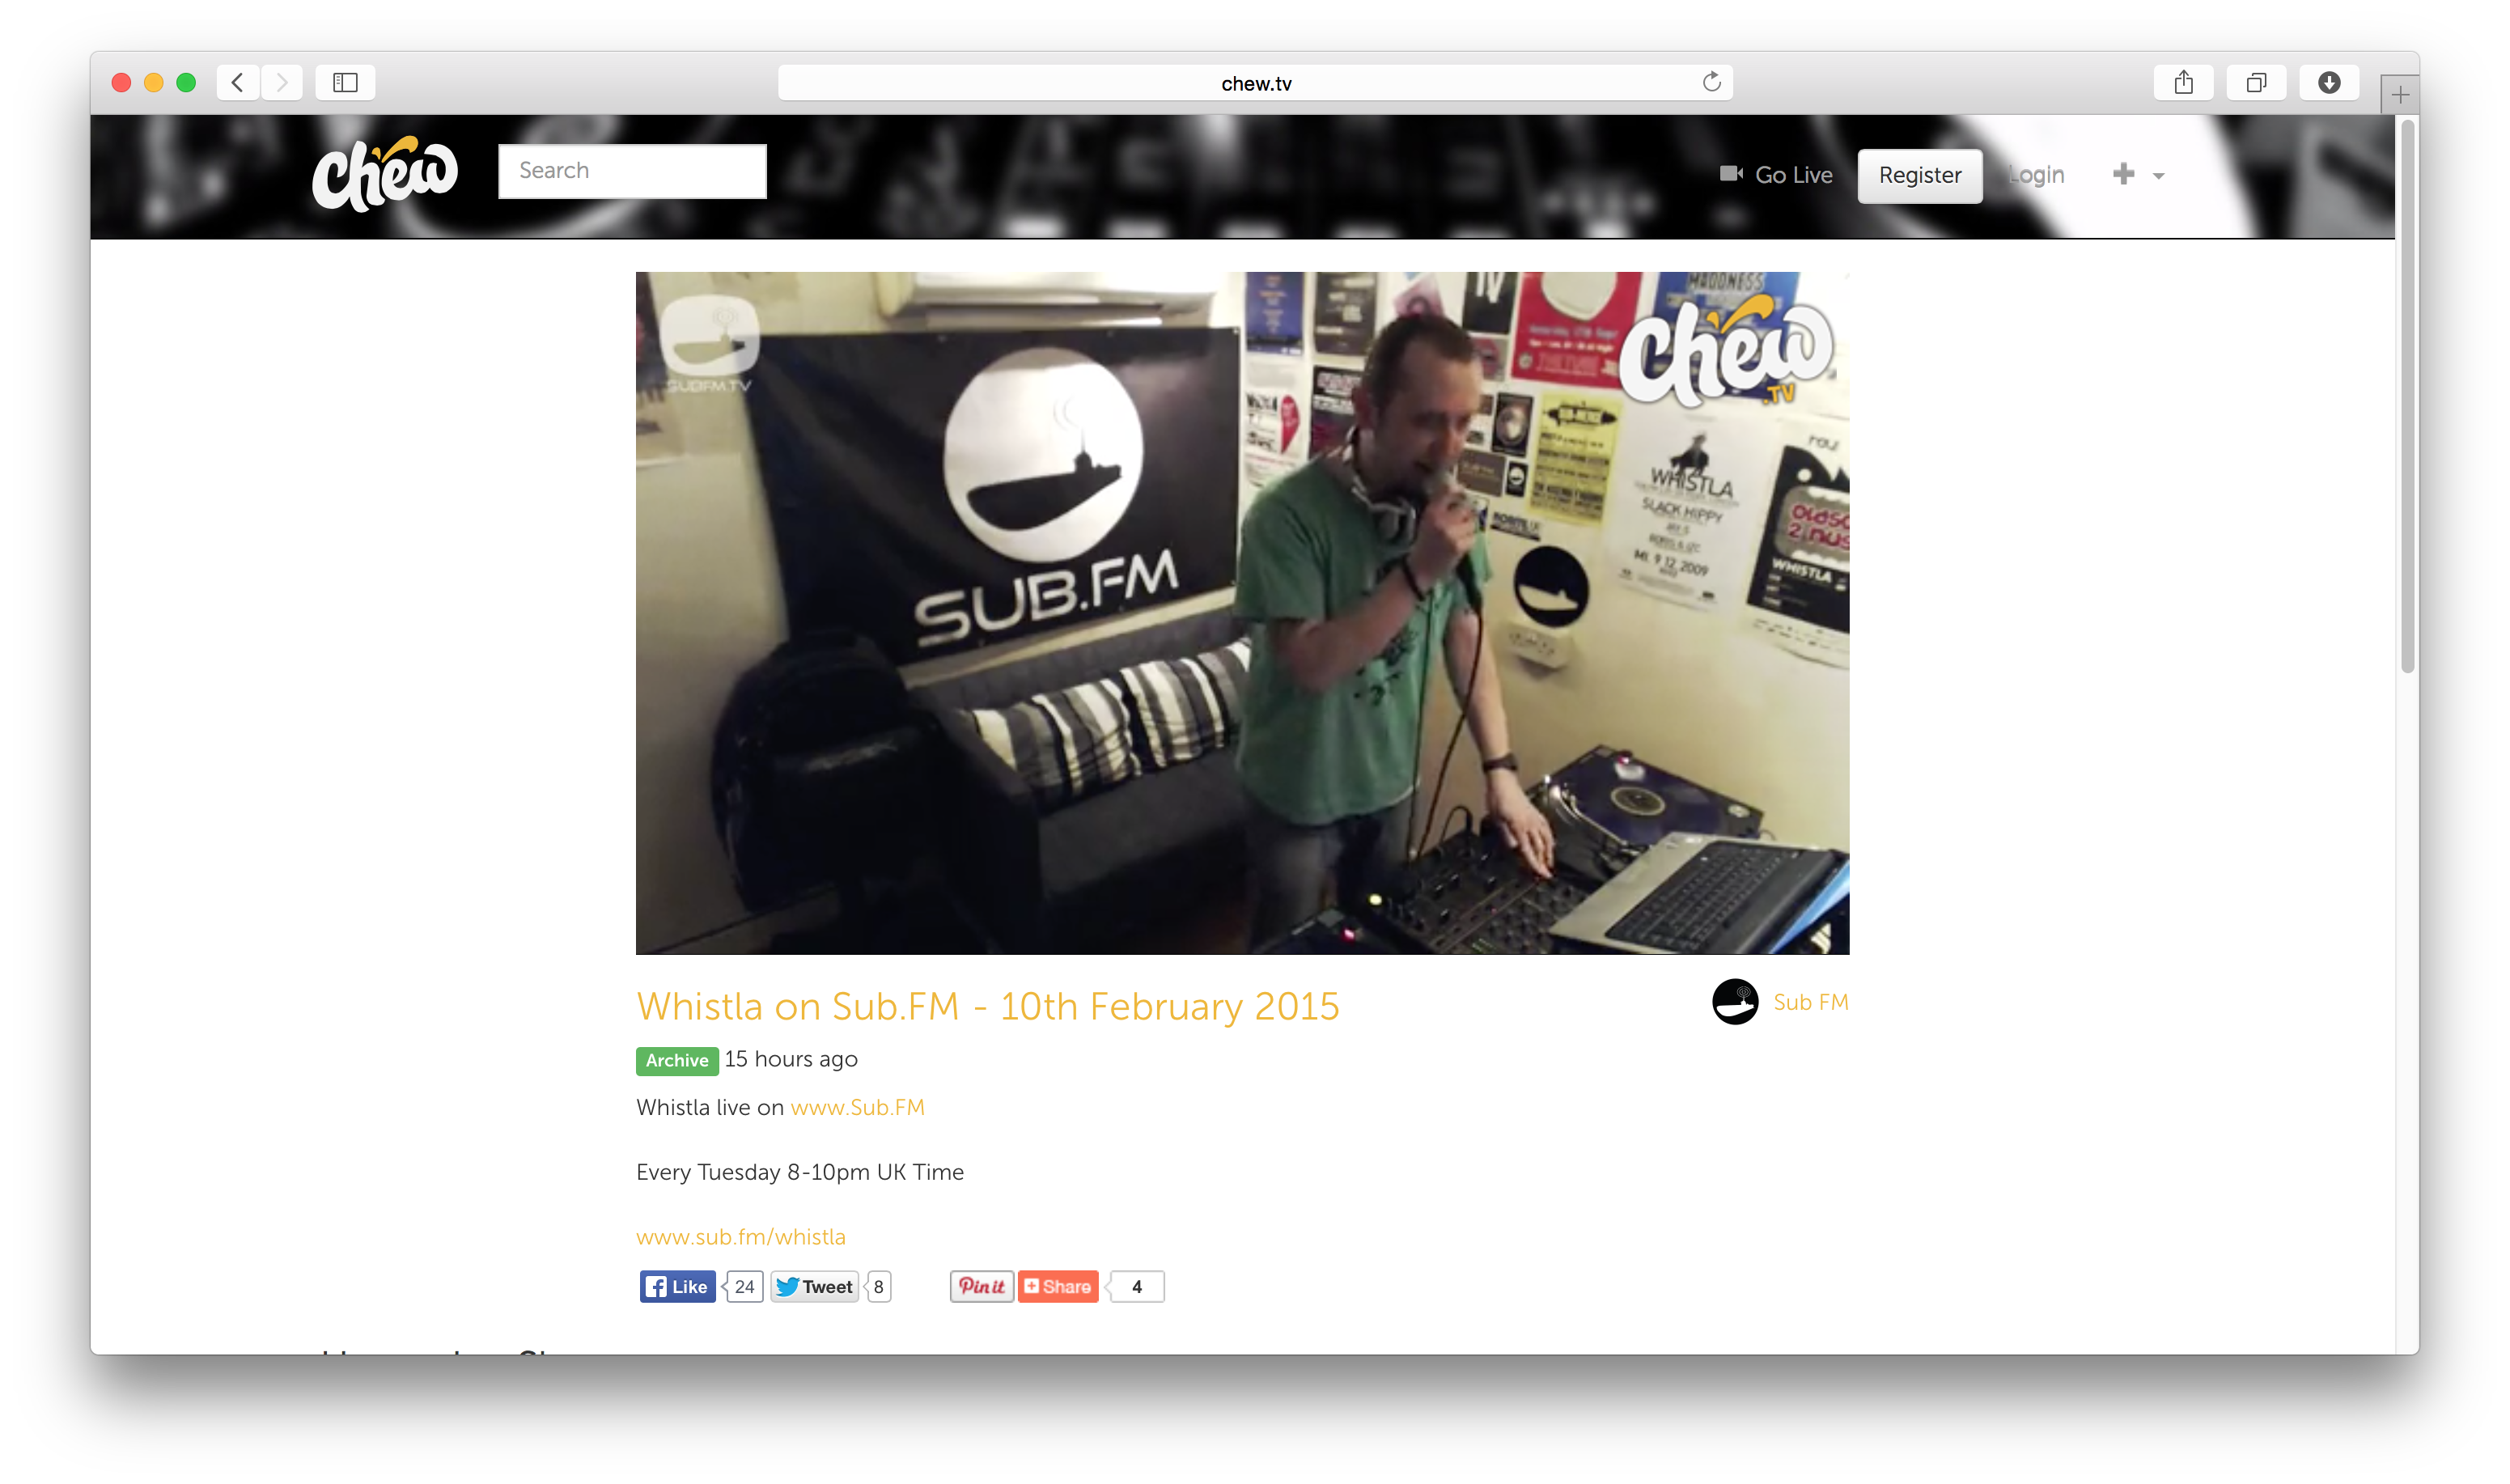 Chew Watch page (chew.tv_subfm_whistla-on-subfm-10th-february-2015)